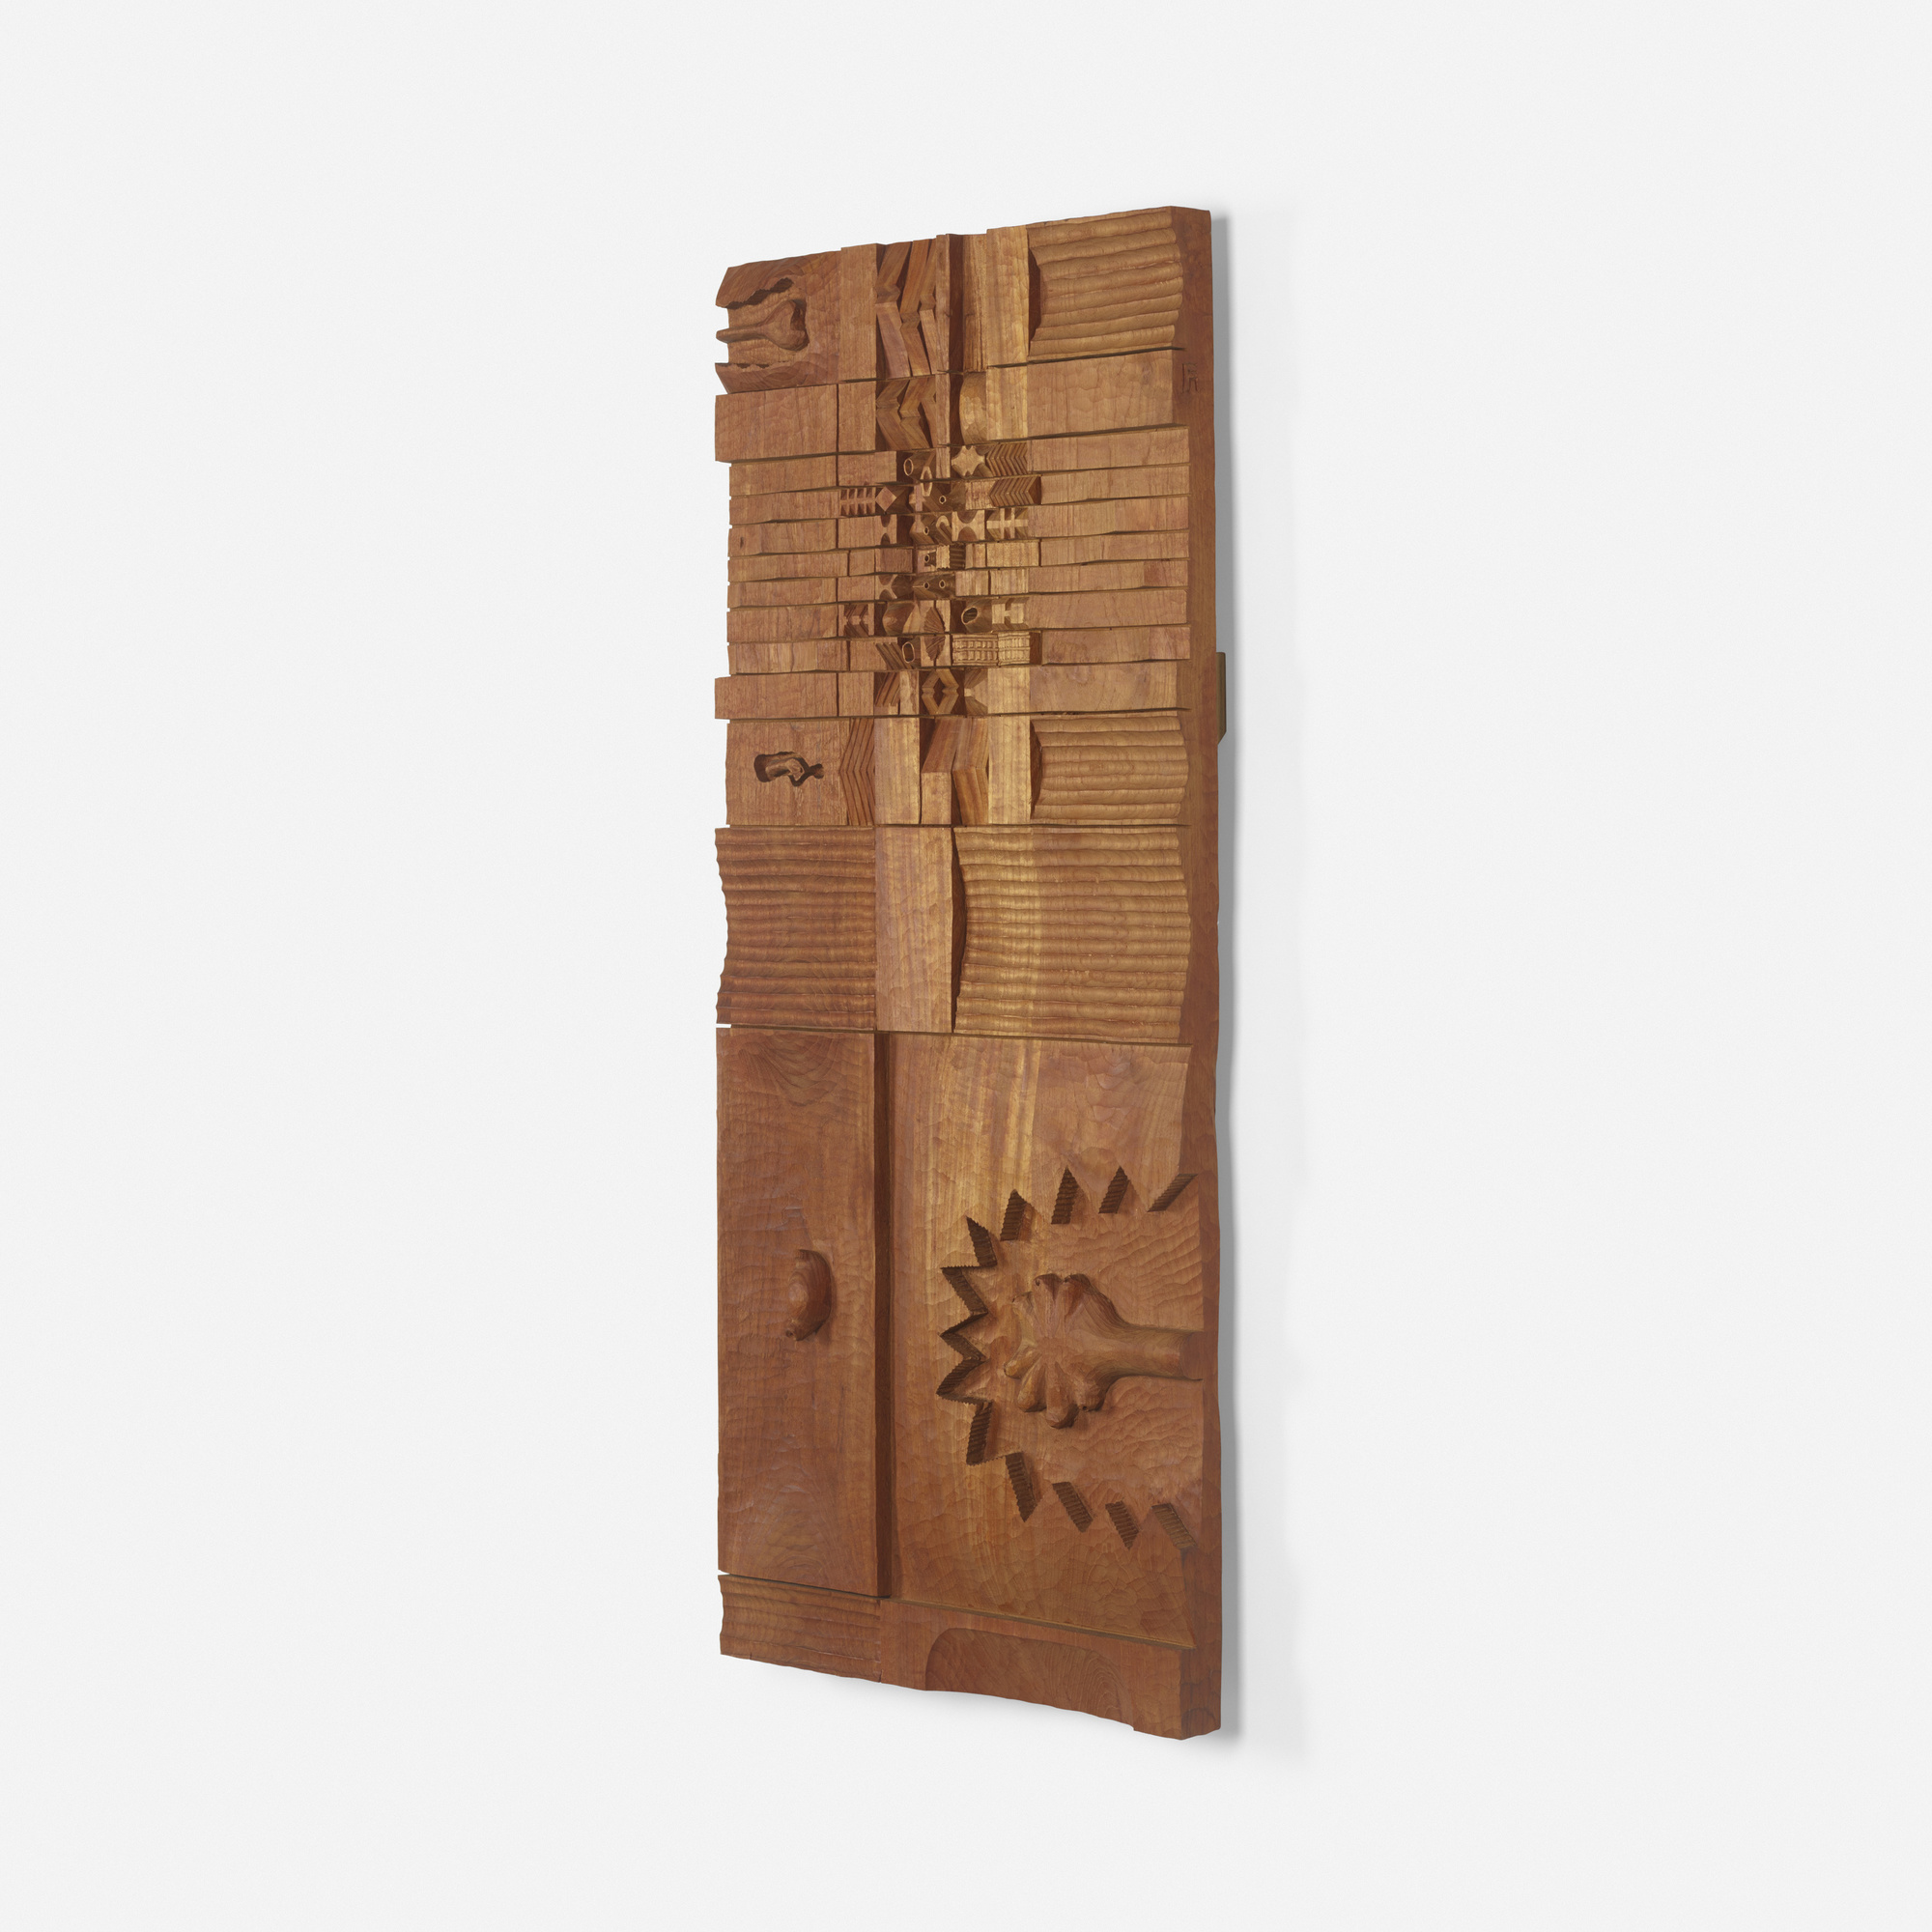 171: Leroy Setziol / Untitled (wood relief) (2 of 2)